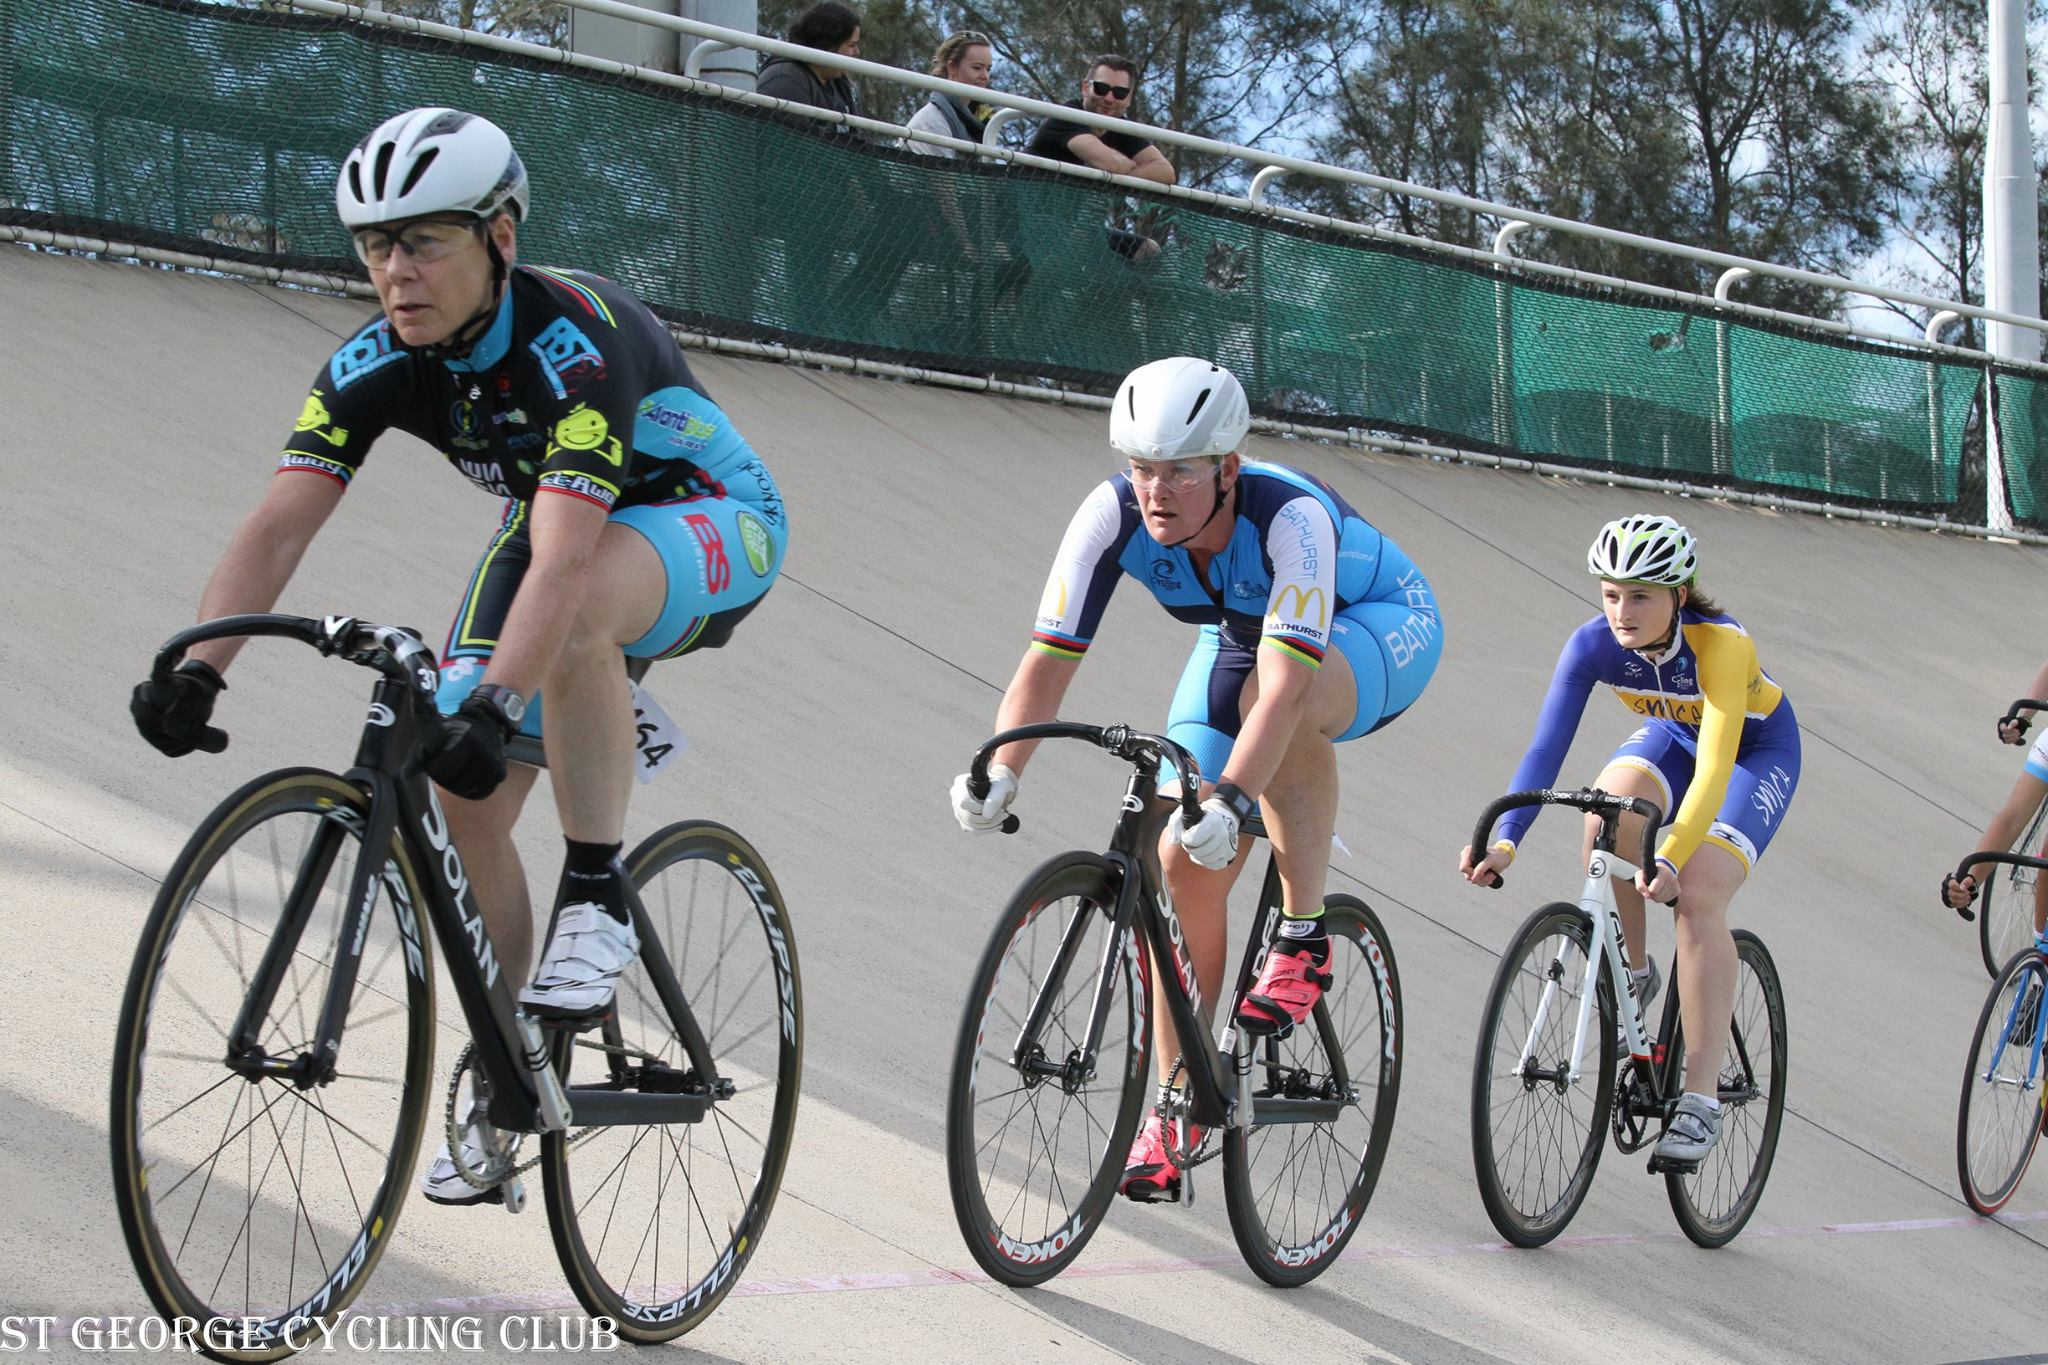 Lise Benjamin (BiciSport) heads off to Los Angeles in October for the World Masters Track Championships